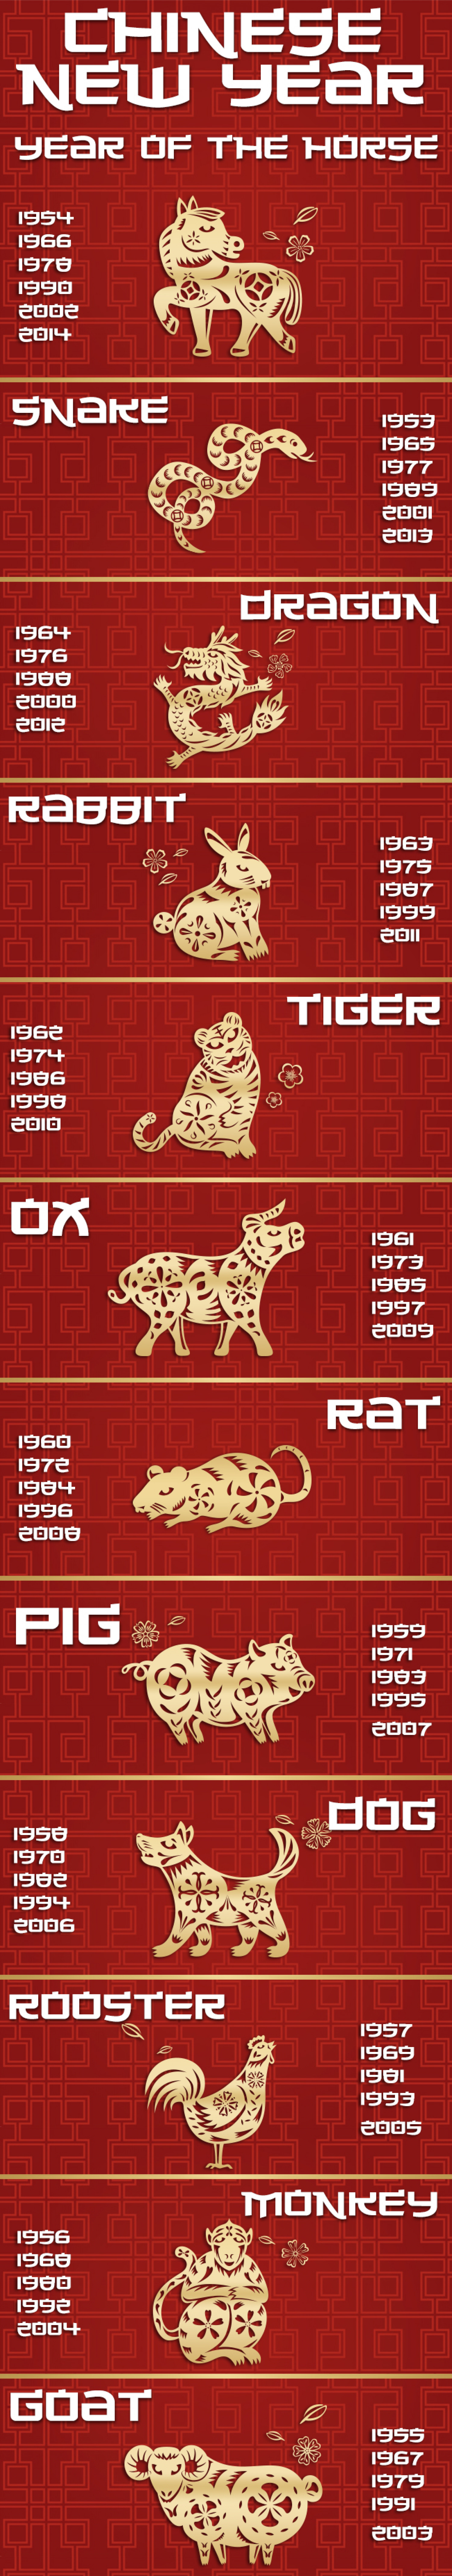 Chinese New Year Animals Infographic